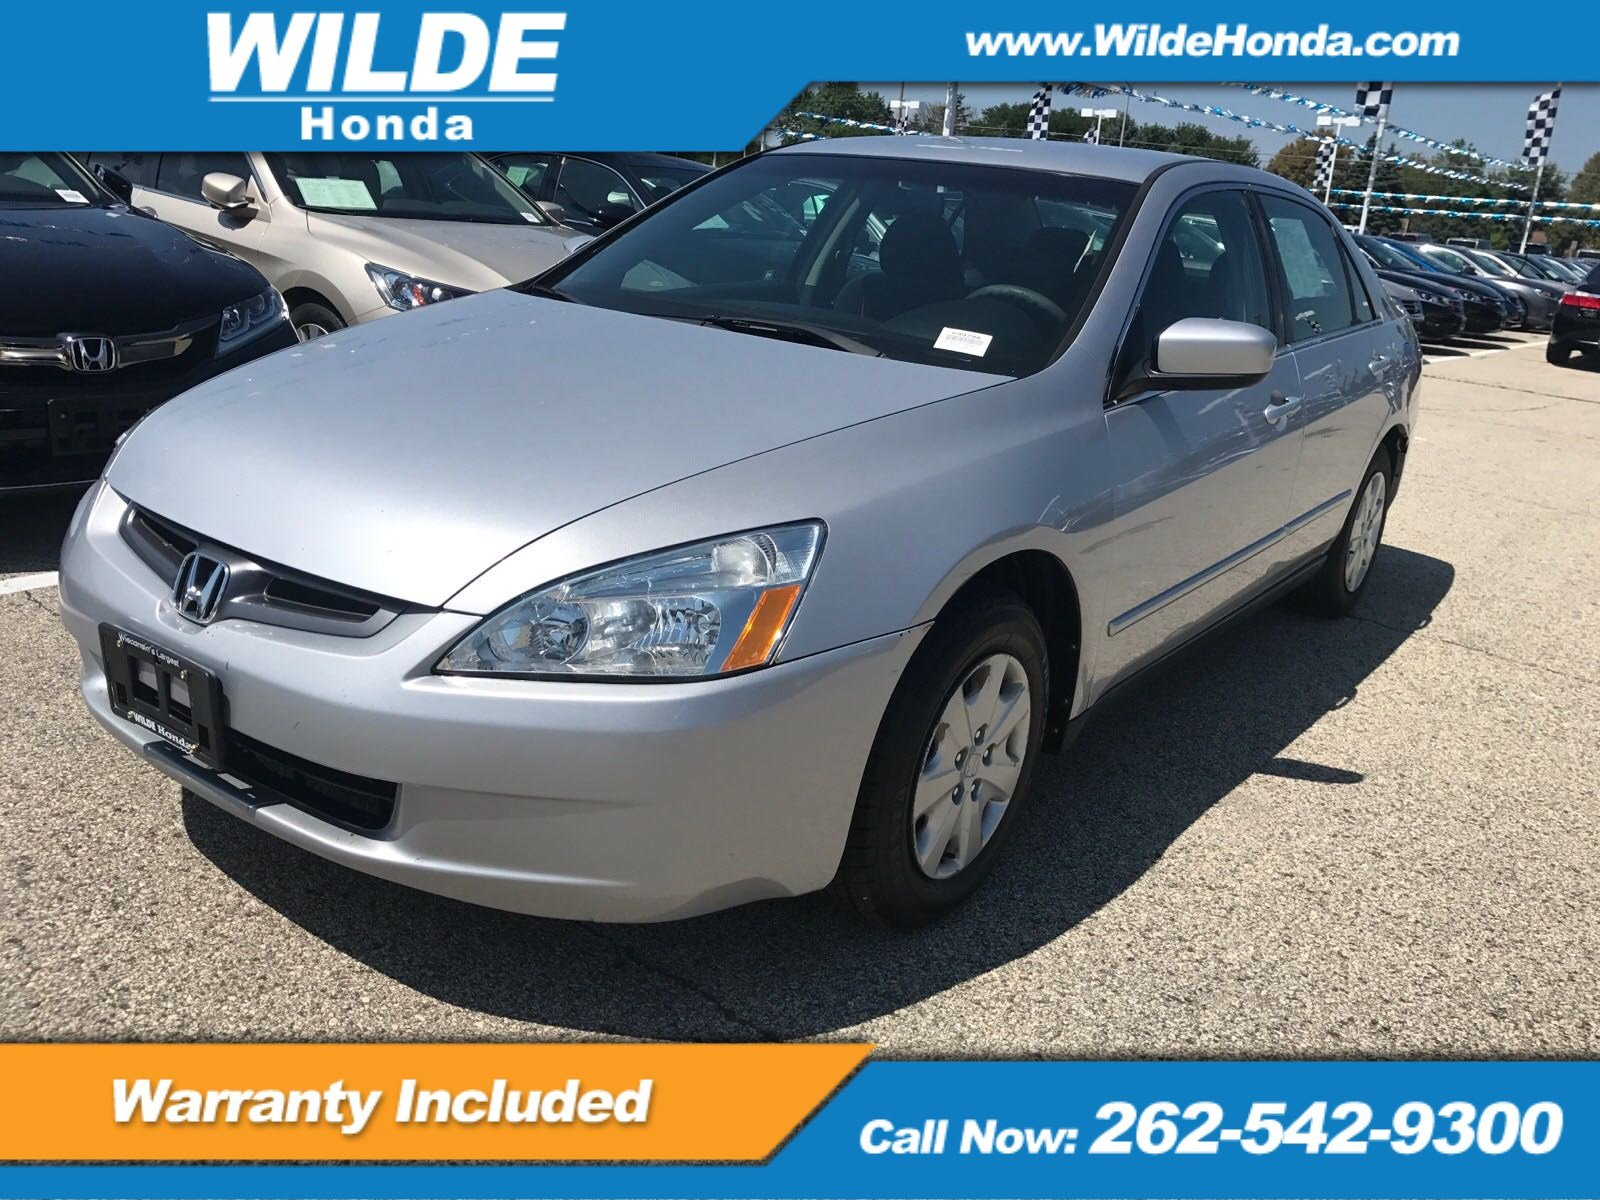 Pre Owned 2003 Honda Accord LX 4dr Car in A